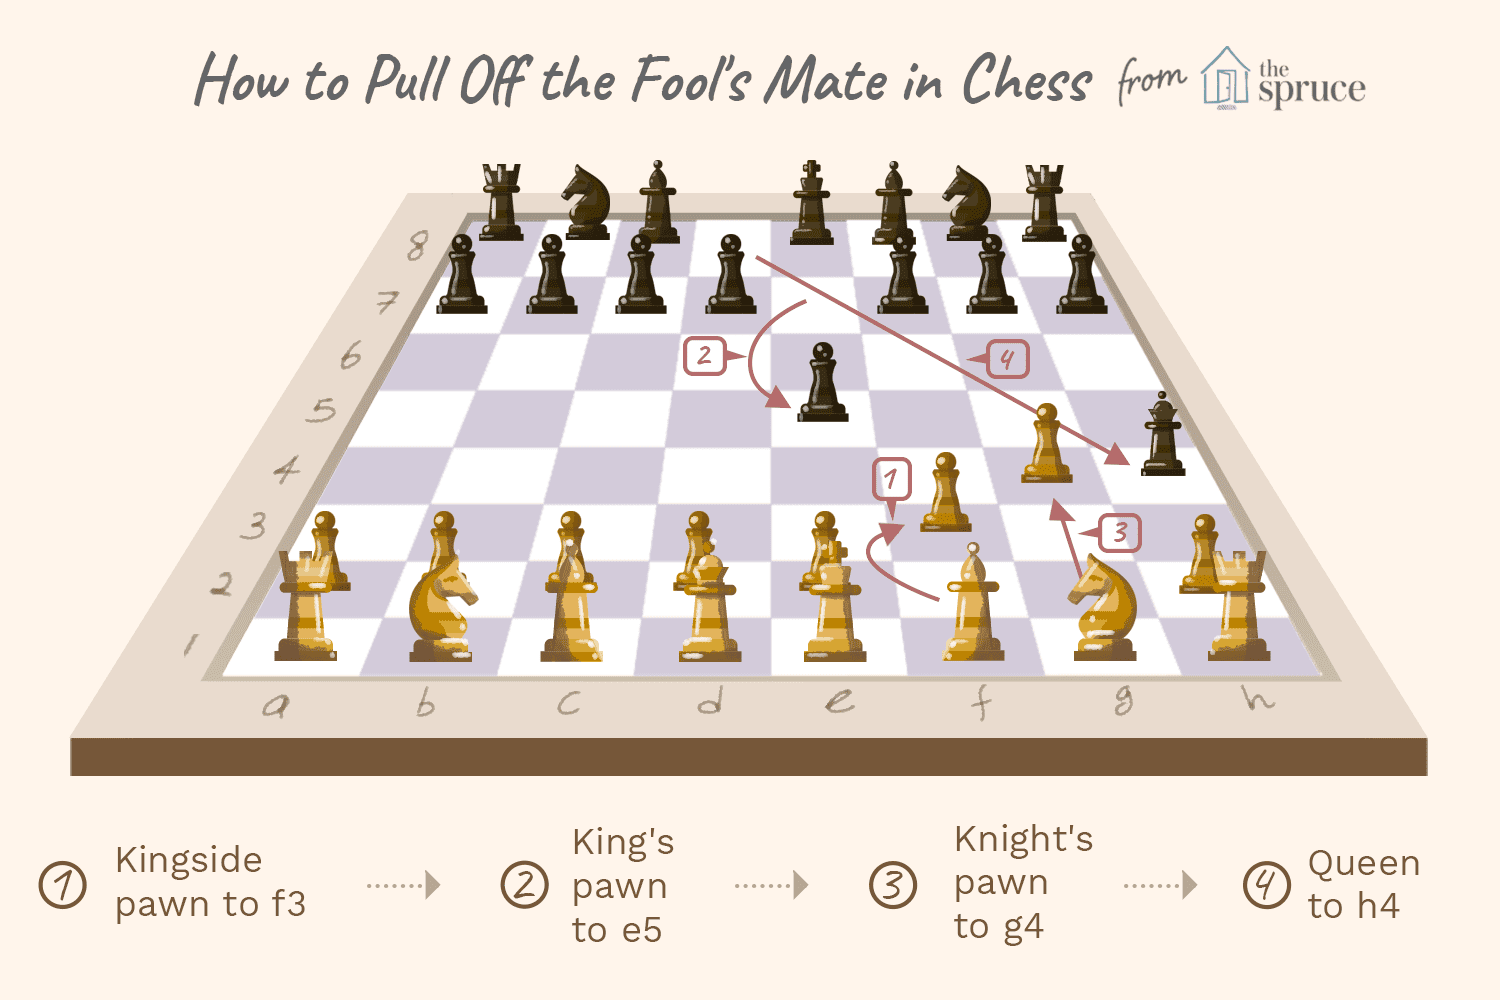 Chess, Fools Mate Royalty Free Stock Image - Image: 36857866 |Chess Fools Mate